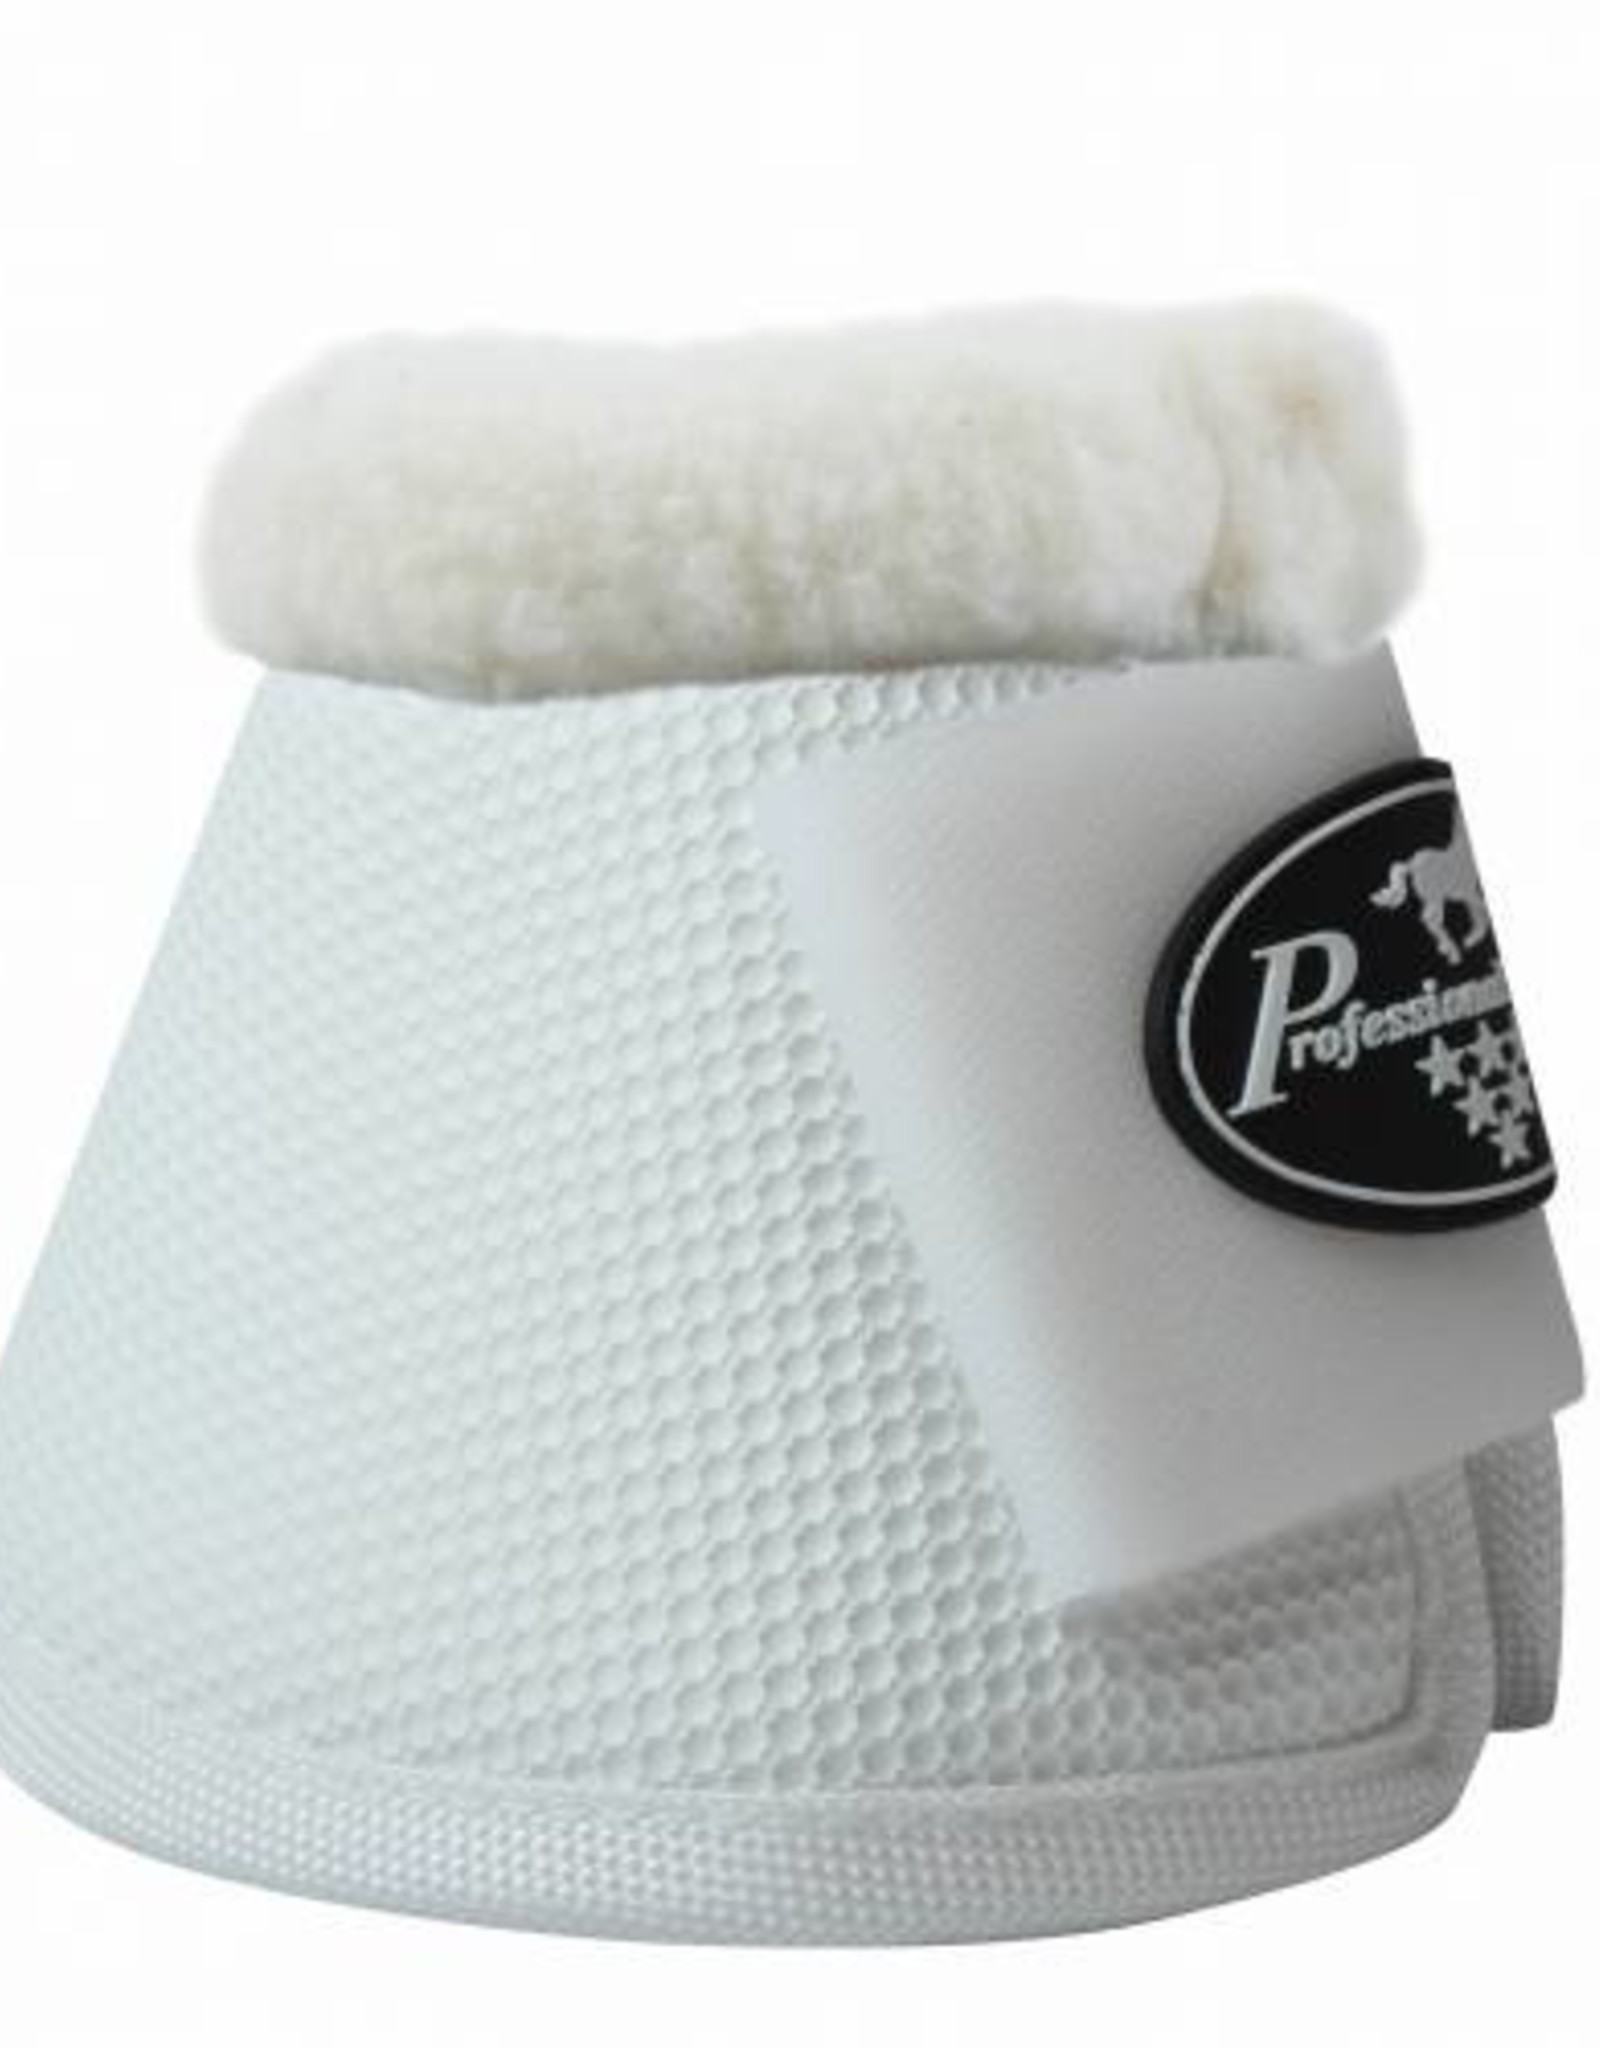 PROFESSIONAL'S CHOICE ALL PURPOSE BELL BOOT WITH FLEECE